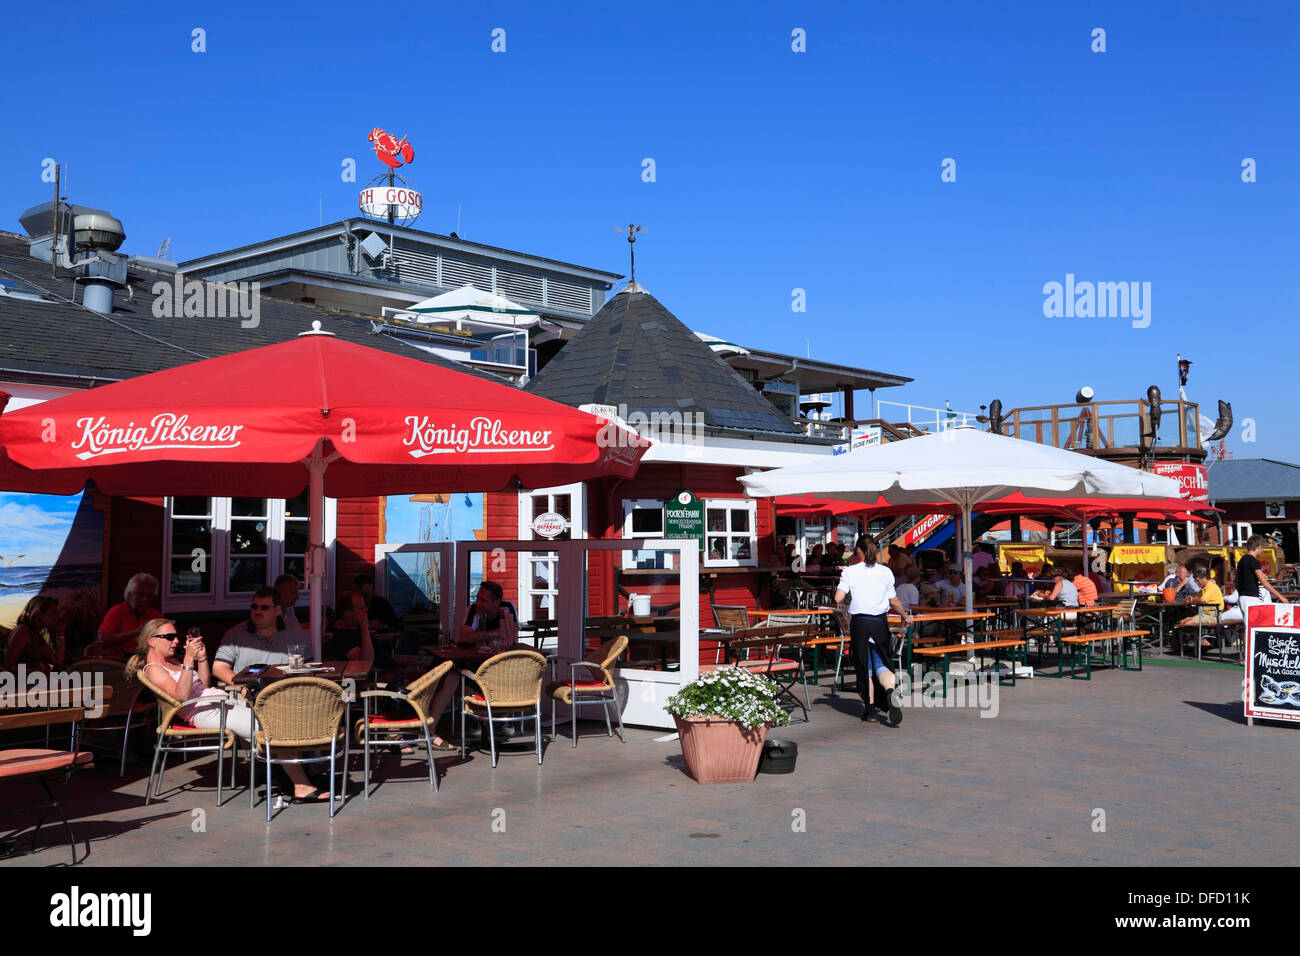 Fish Restaurant Gosch, List harbour, Sylt Island, Schleswig-Holstein, Germany - Stock Image